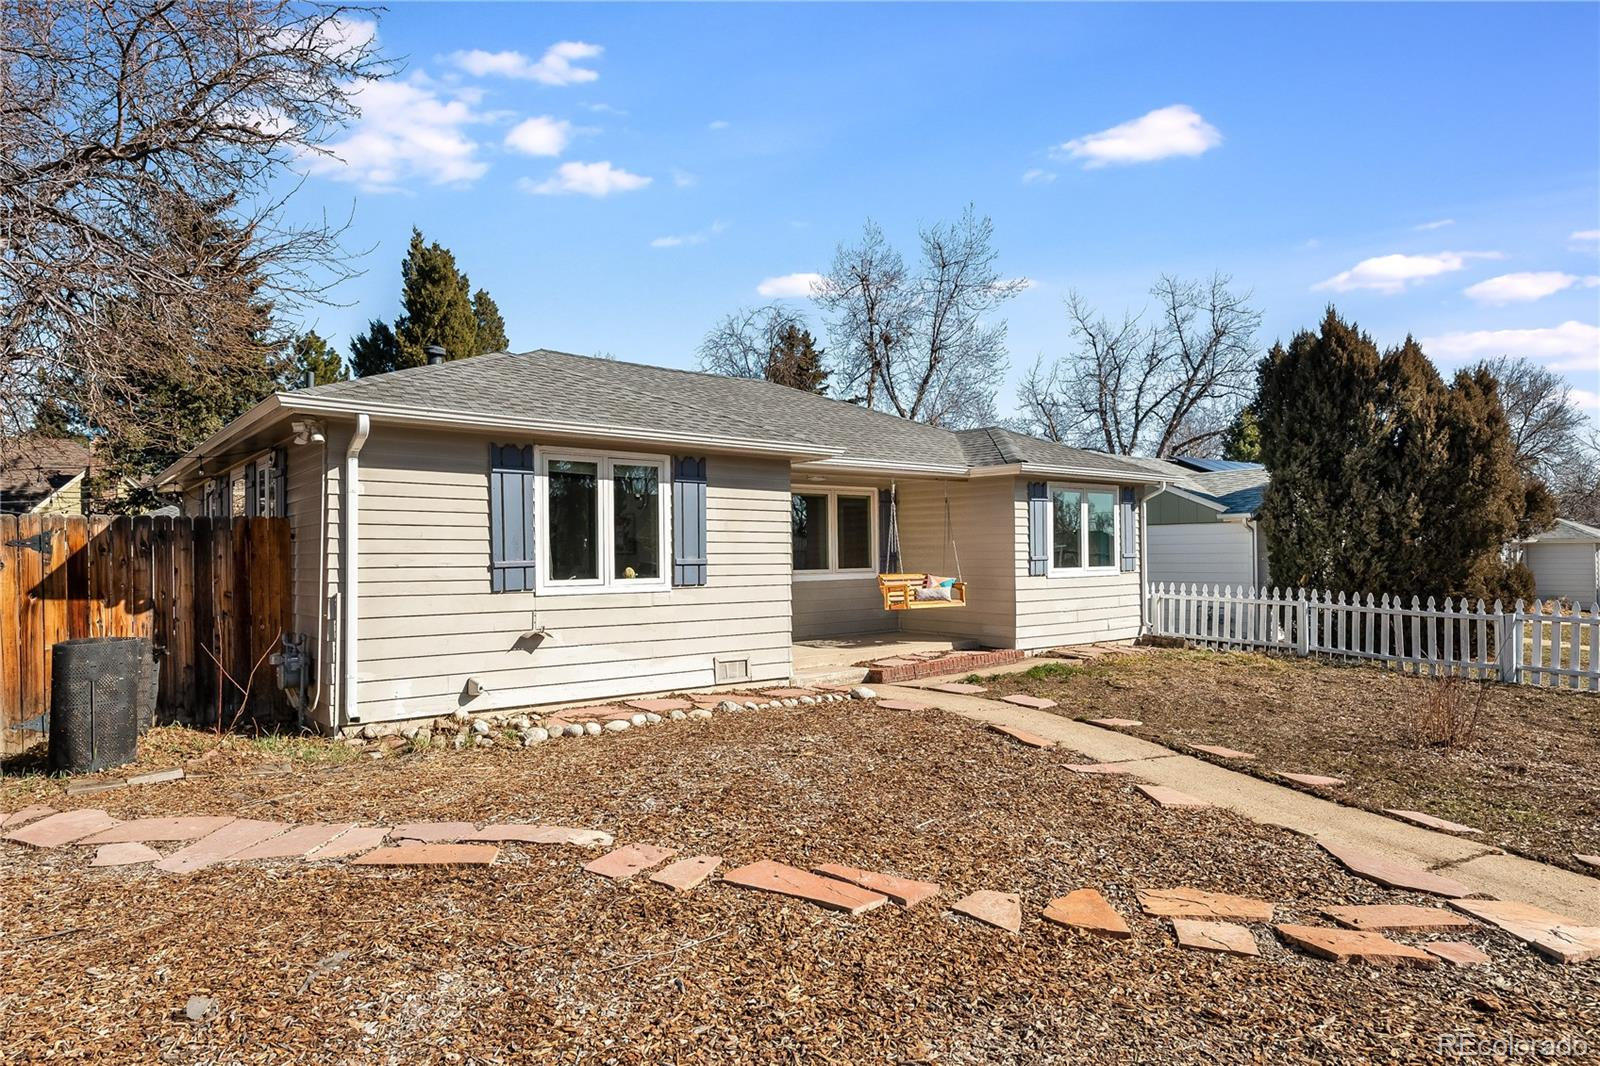 MLS# 2050120 - 1 - 7195 W 24th Place, Lakewood, CO 80214